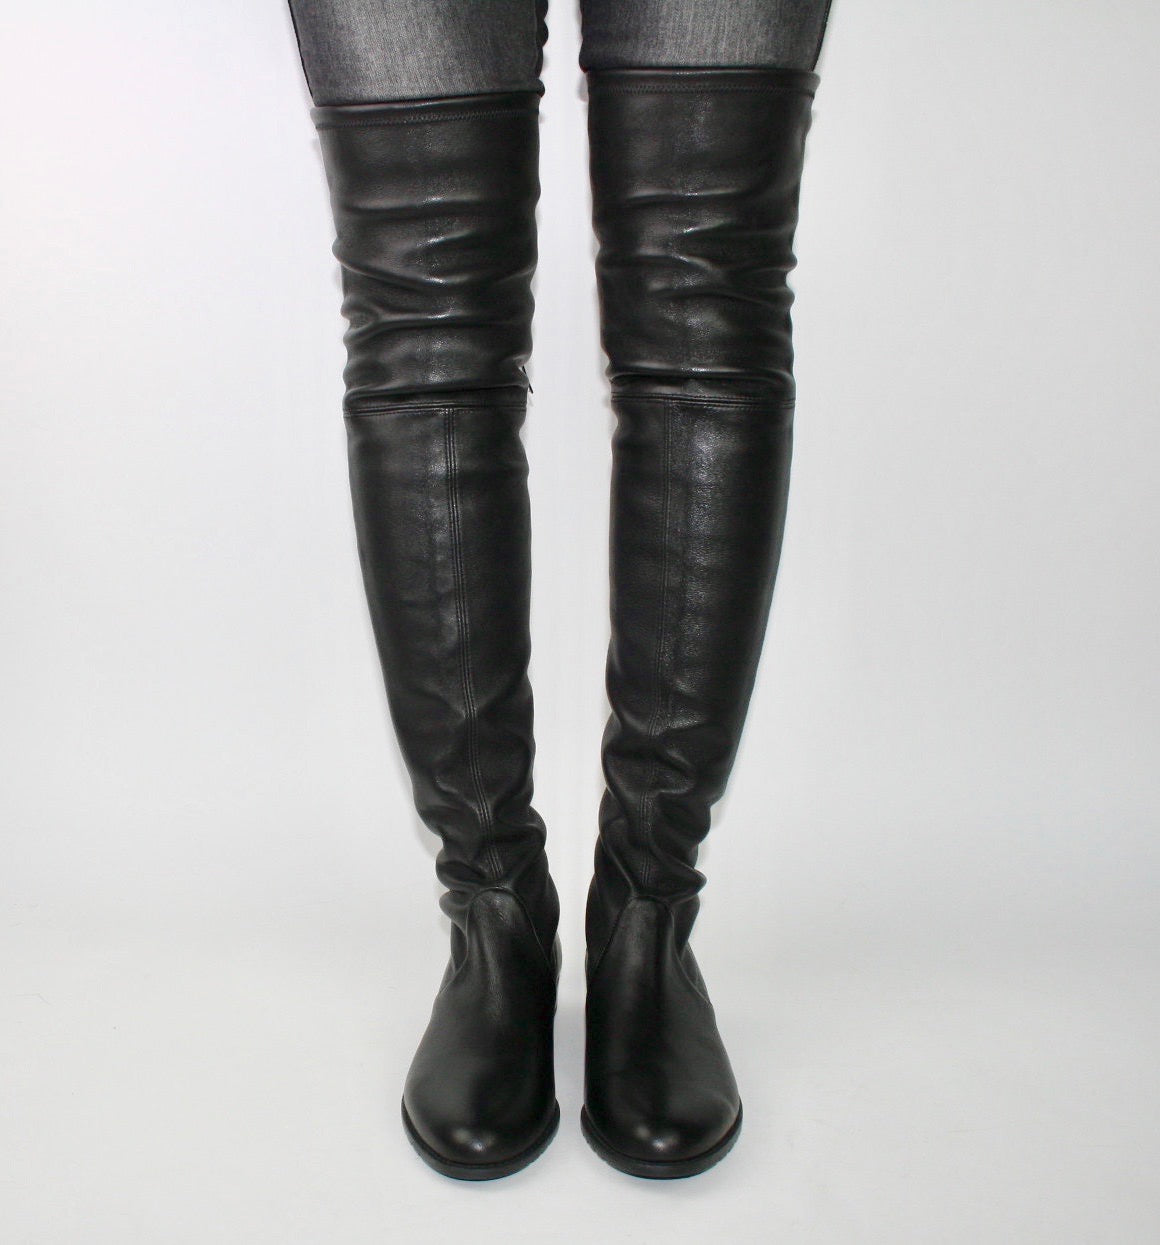 Stuart Weitzman Over-knee boots 39,5 - Iconics Preloved Luxury